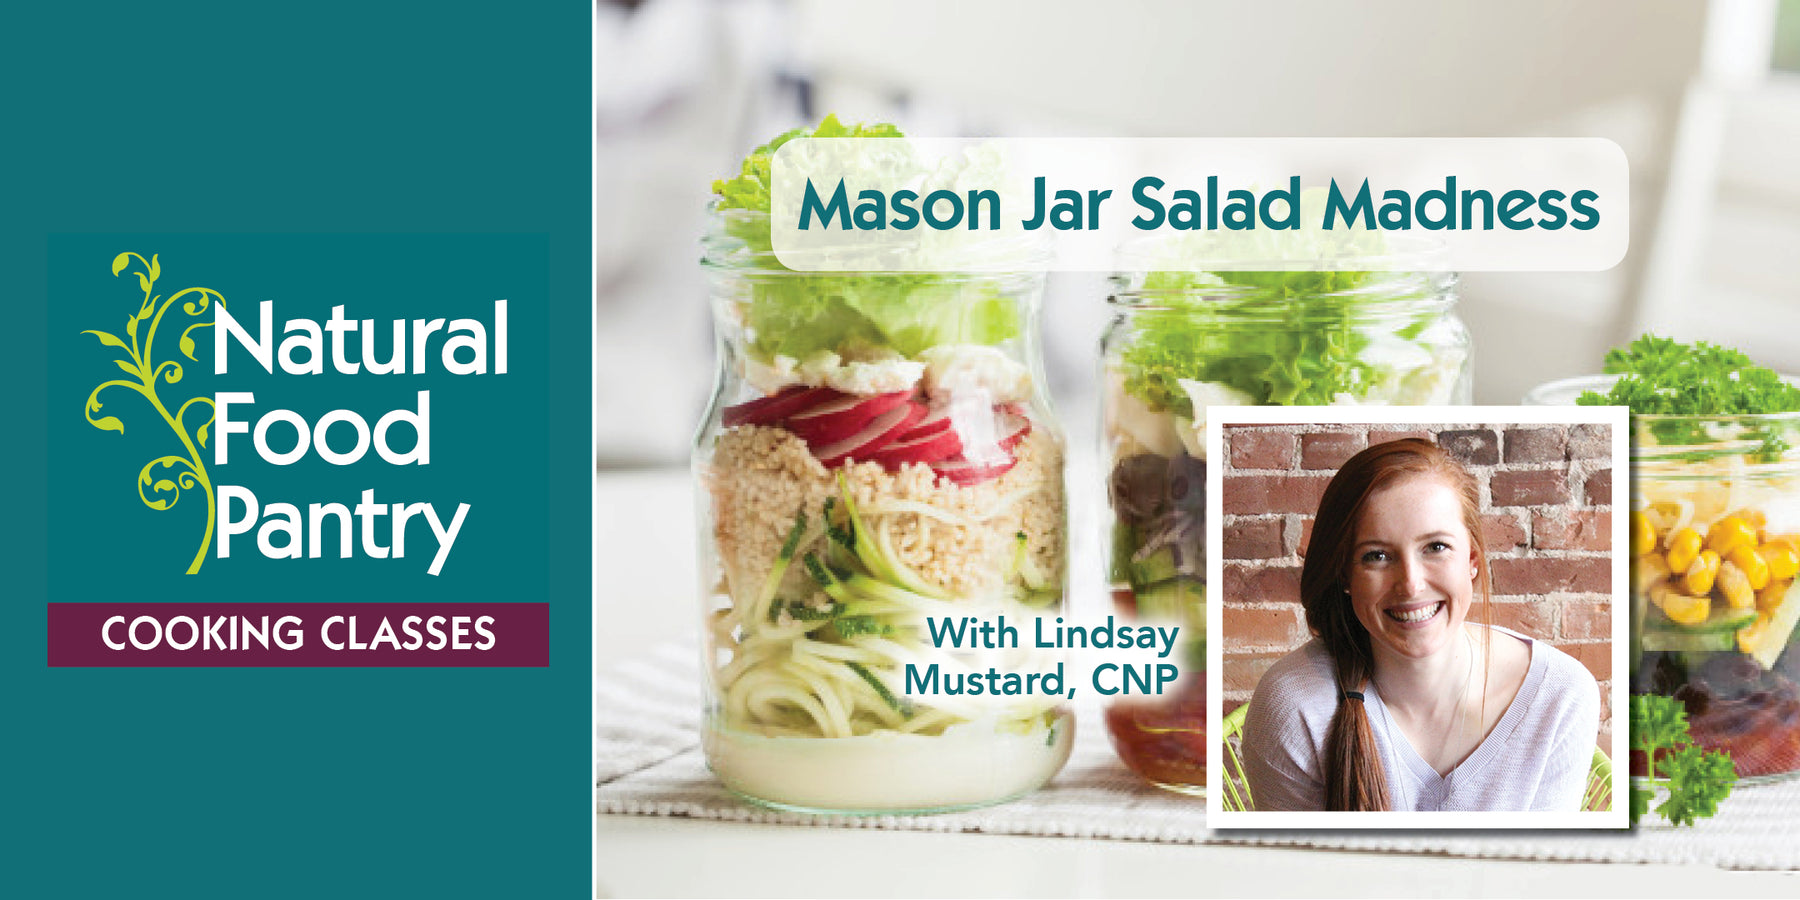 Jun 12: Mason Jar Salad Madness